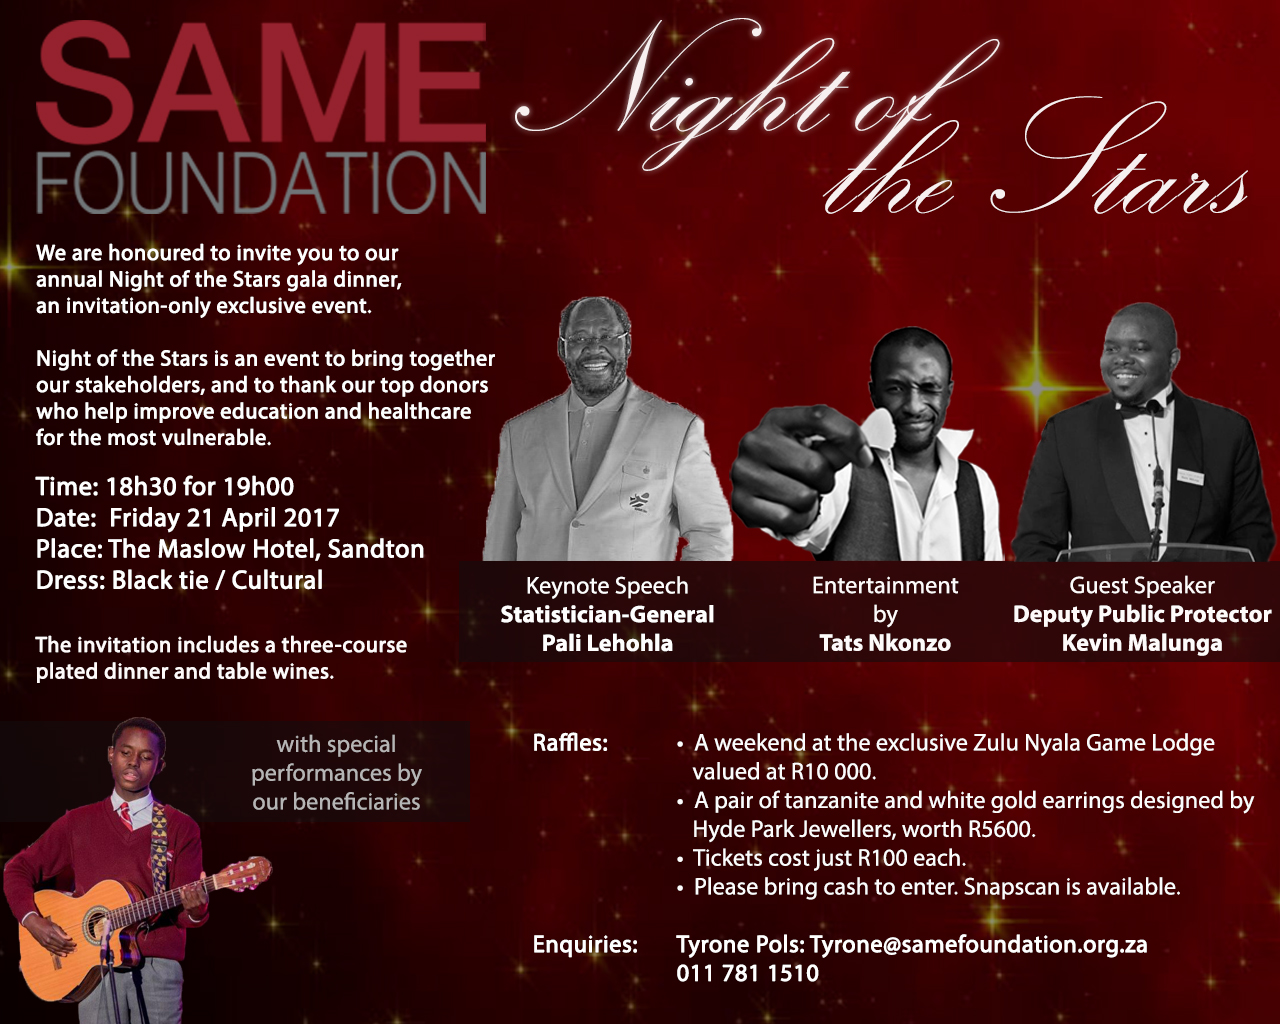 Night of the Stars Details